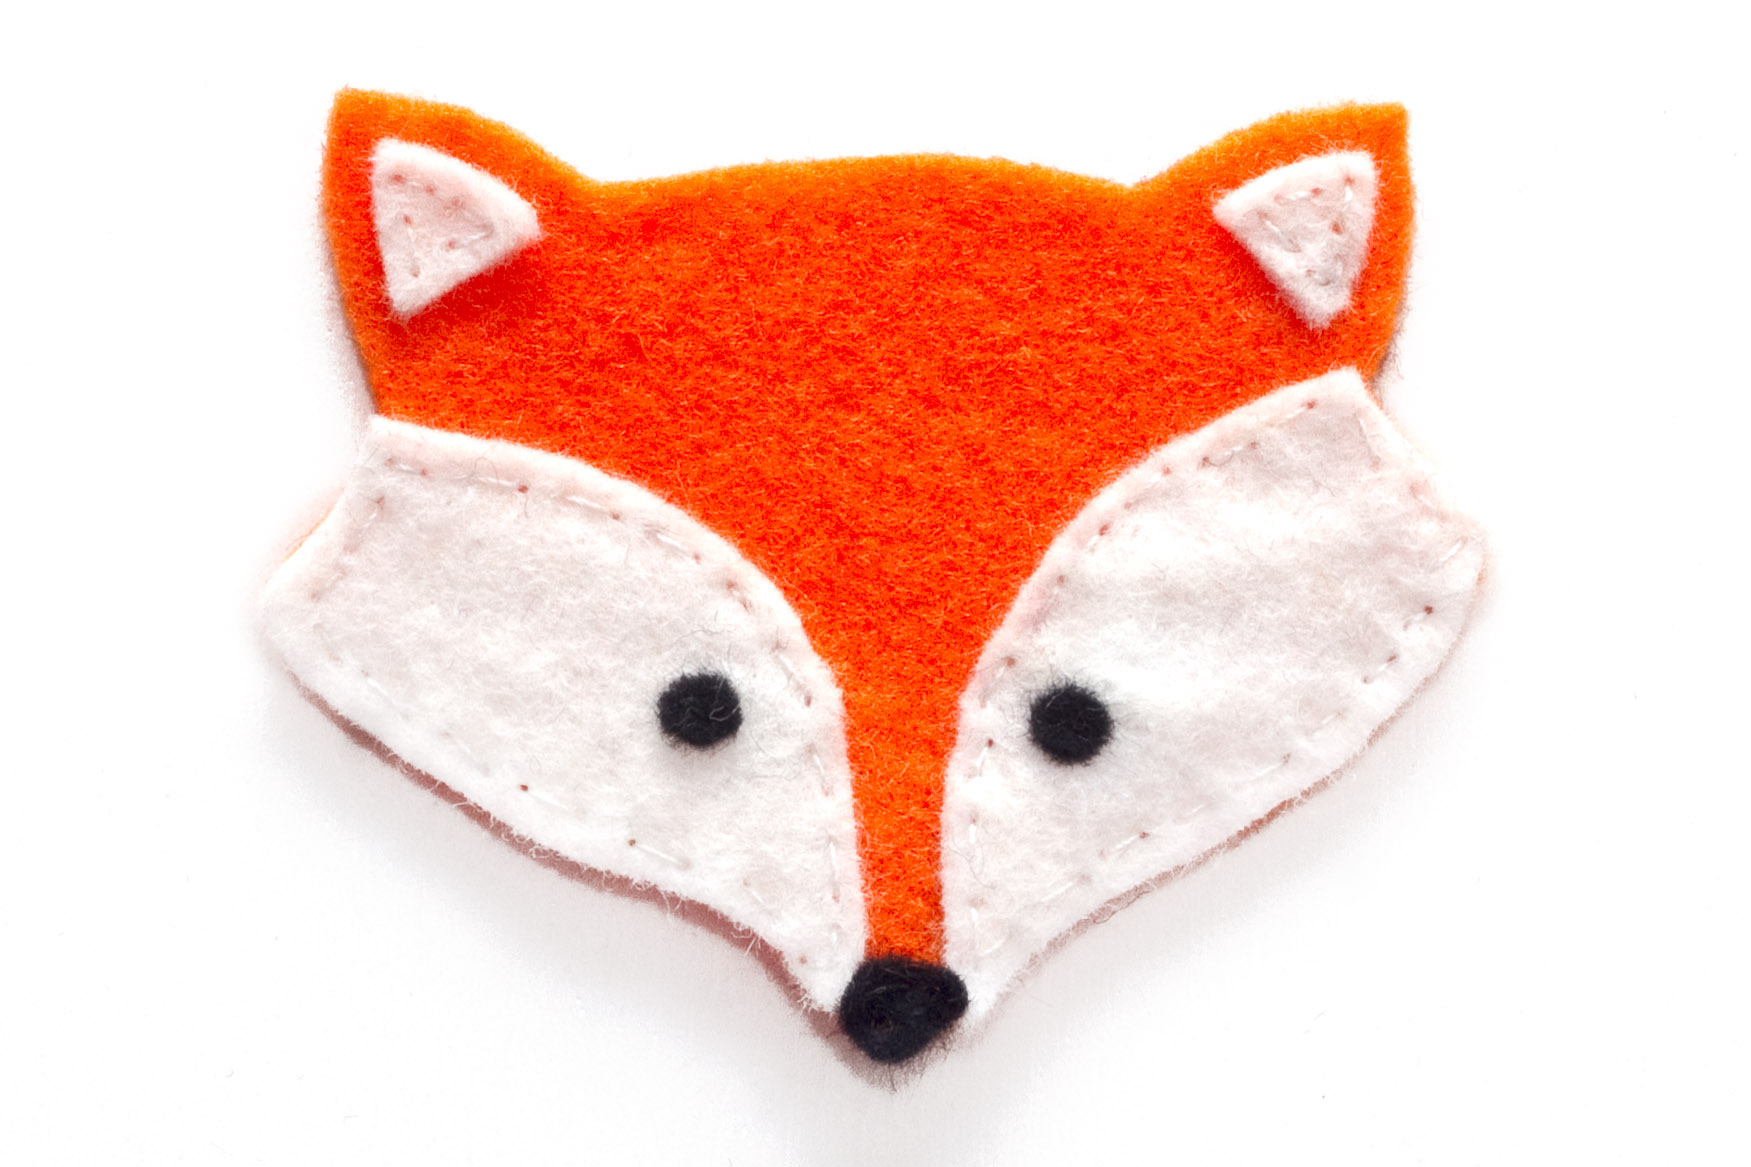 Step 2. Sew the black circles onto the white felt using the black cotton. Then sew all of the white felt pieces onto one of the orange felt shapes using white cotton. Then sew the black nose on with black cotton.